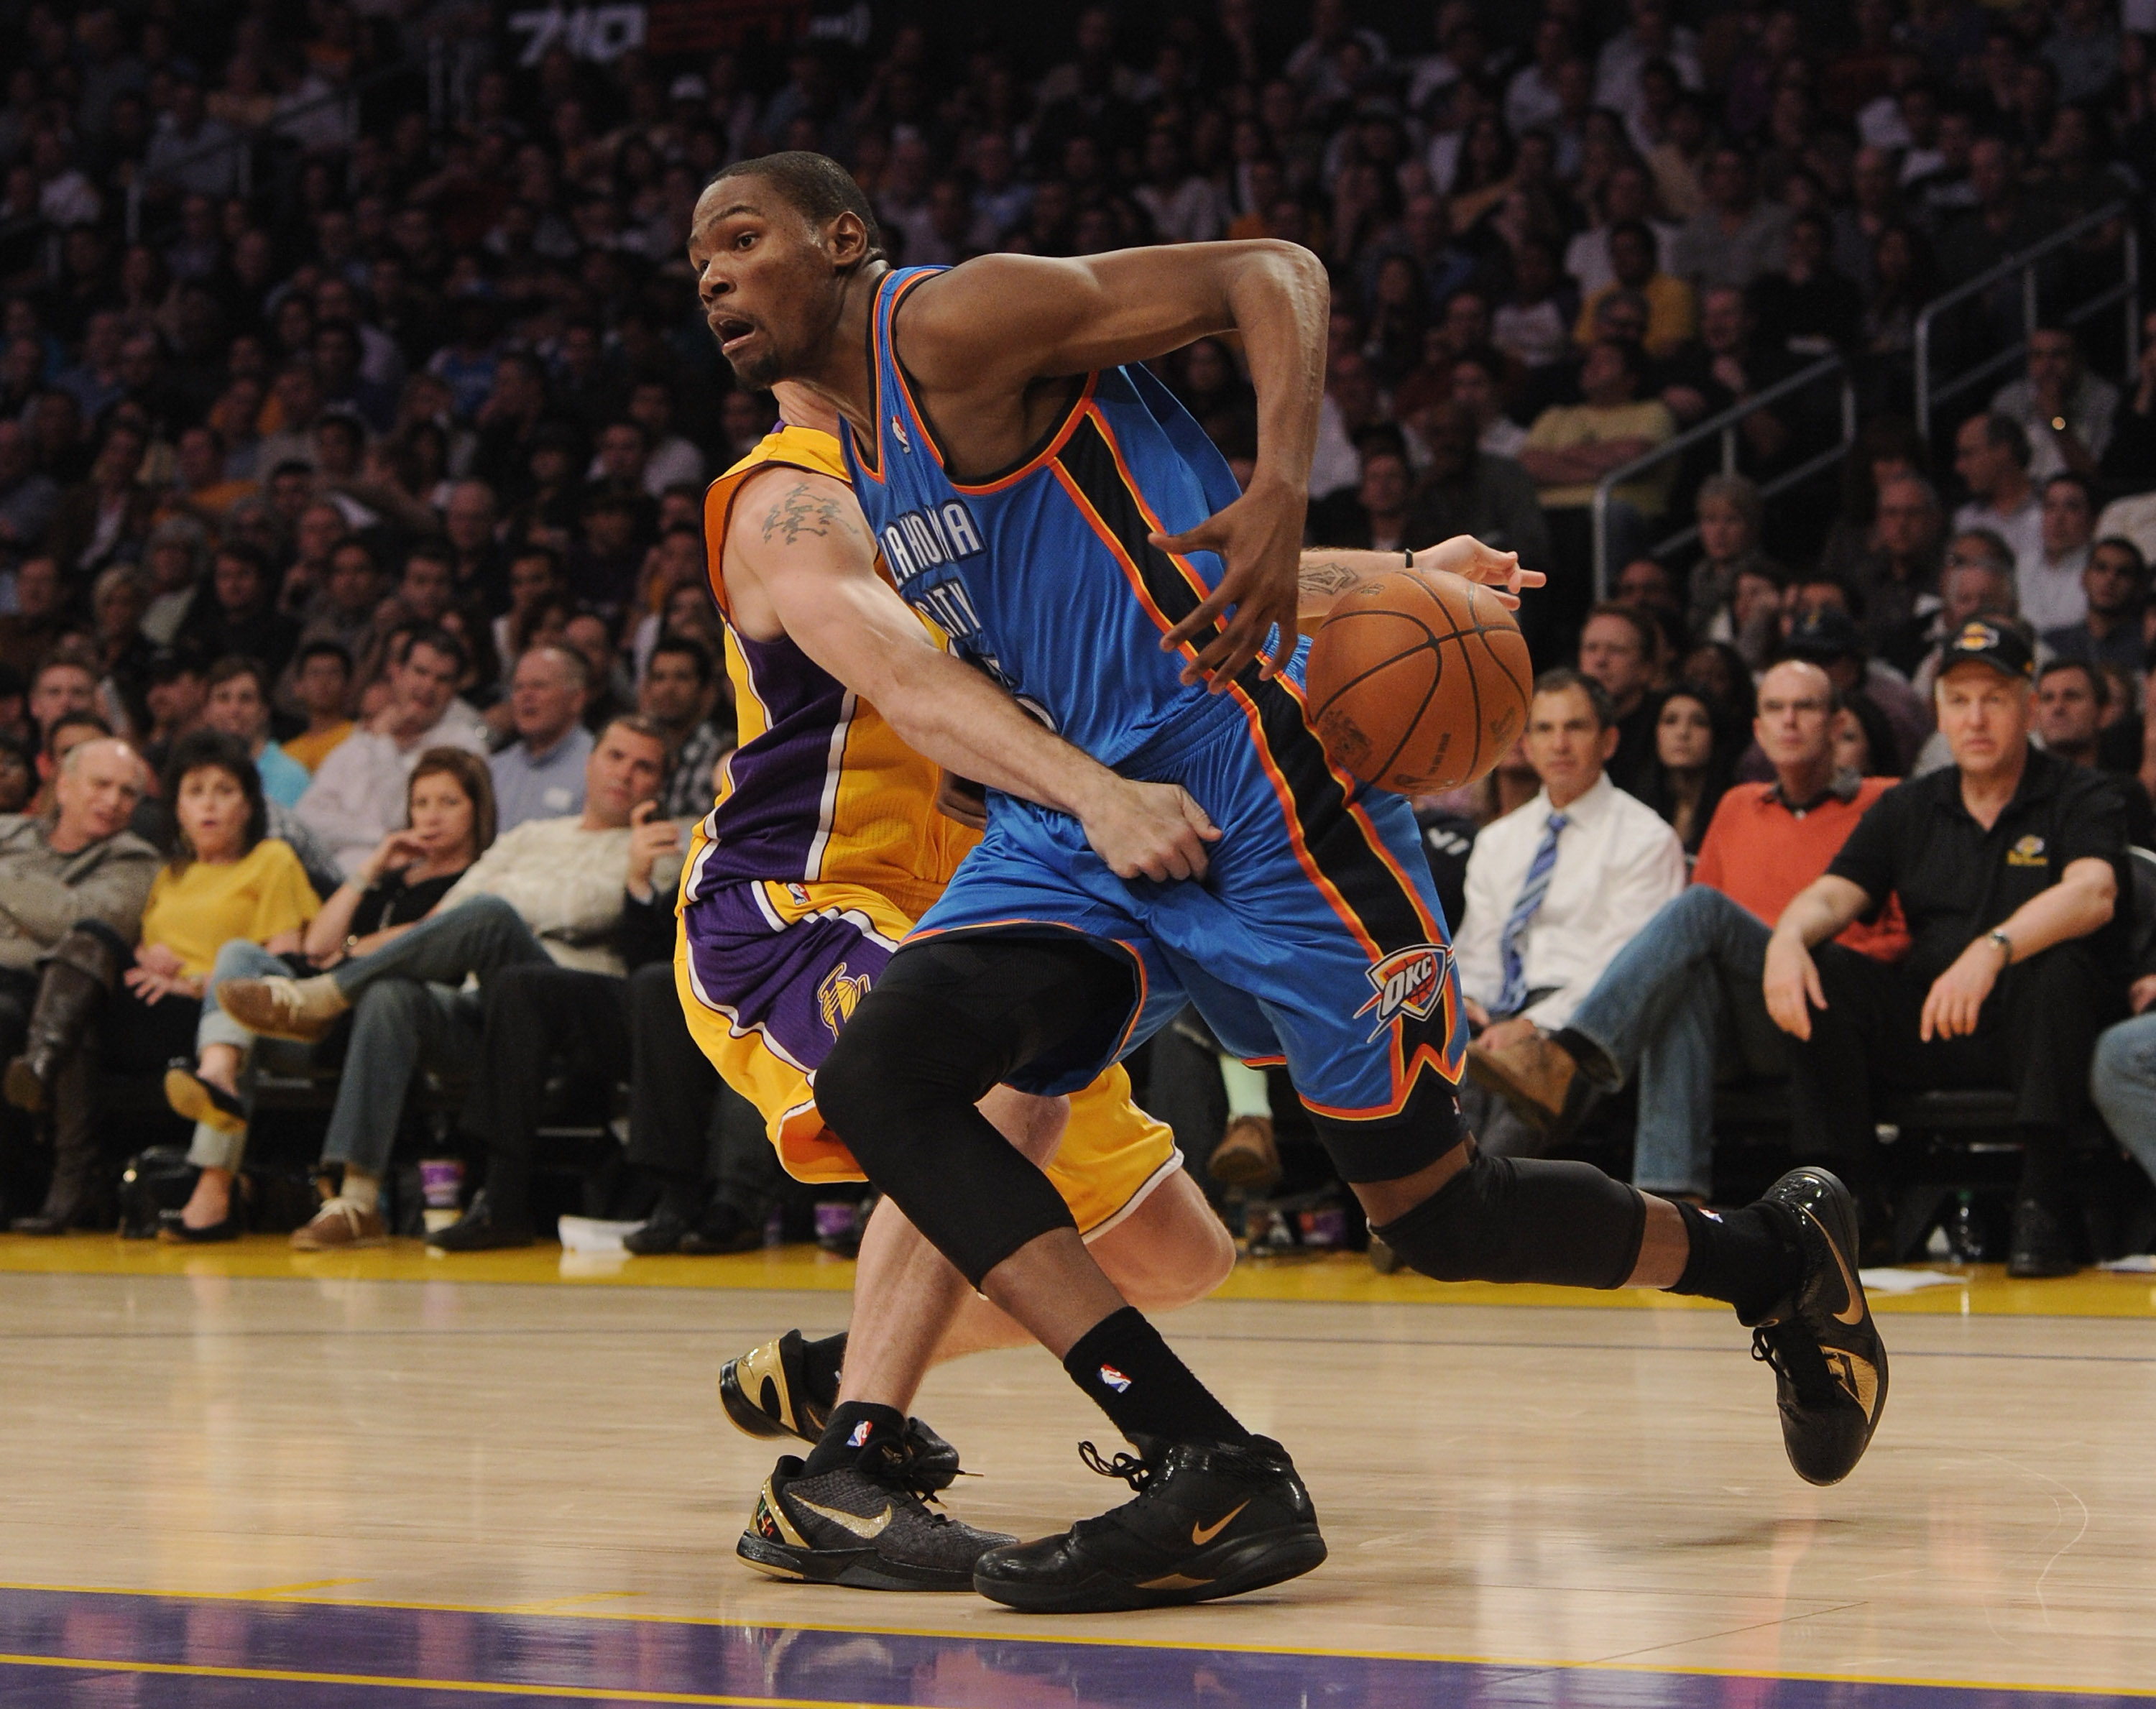 LOS ANGELES, CA - JANUARY 17:  Kevin Durant #35 of the Oklahoma City Thunder has the ball knocked away by Luke Walton #4 of the Los Angeles Lakers at the Staples Center on January 17, 2011 in Los Angeles, California.   NOTE TO USER: User expressly acknowl